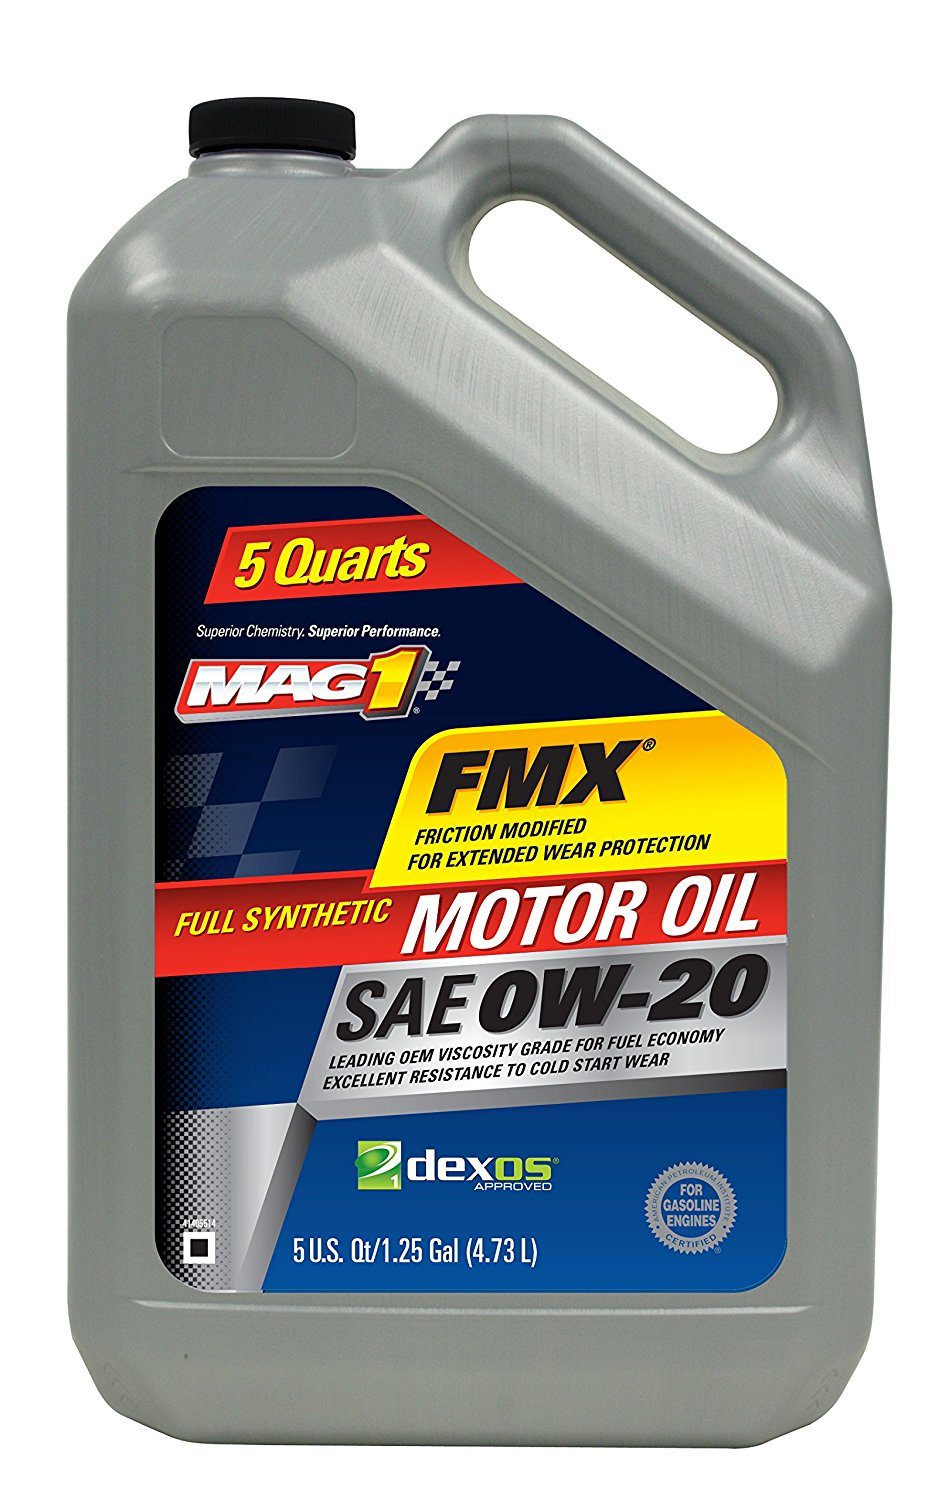 MAG 1 20139 0W-20 Full Synthetic Motor Oil, 5 quart